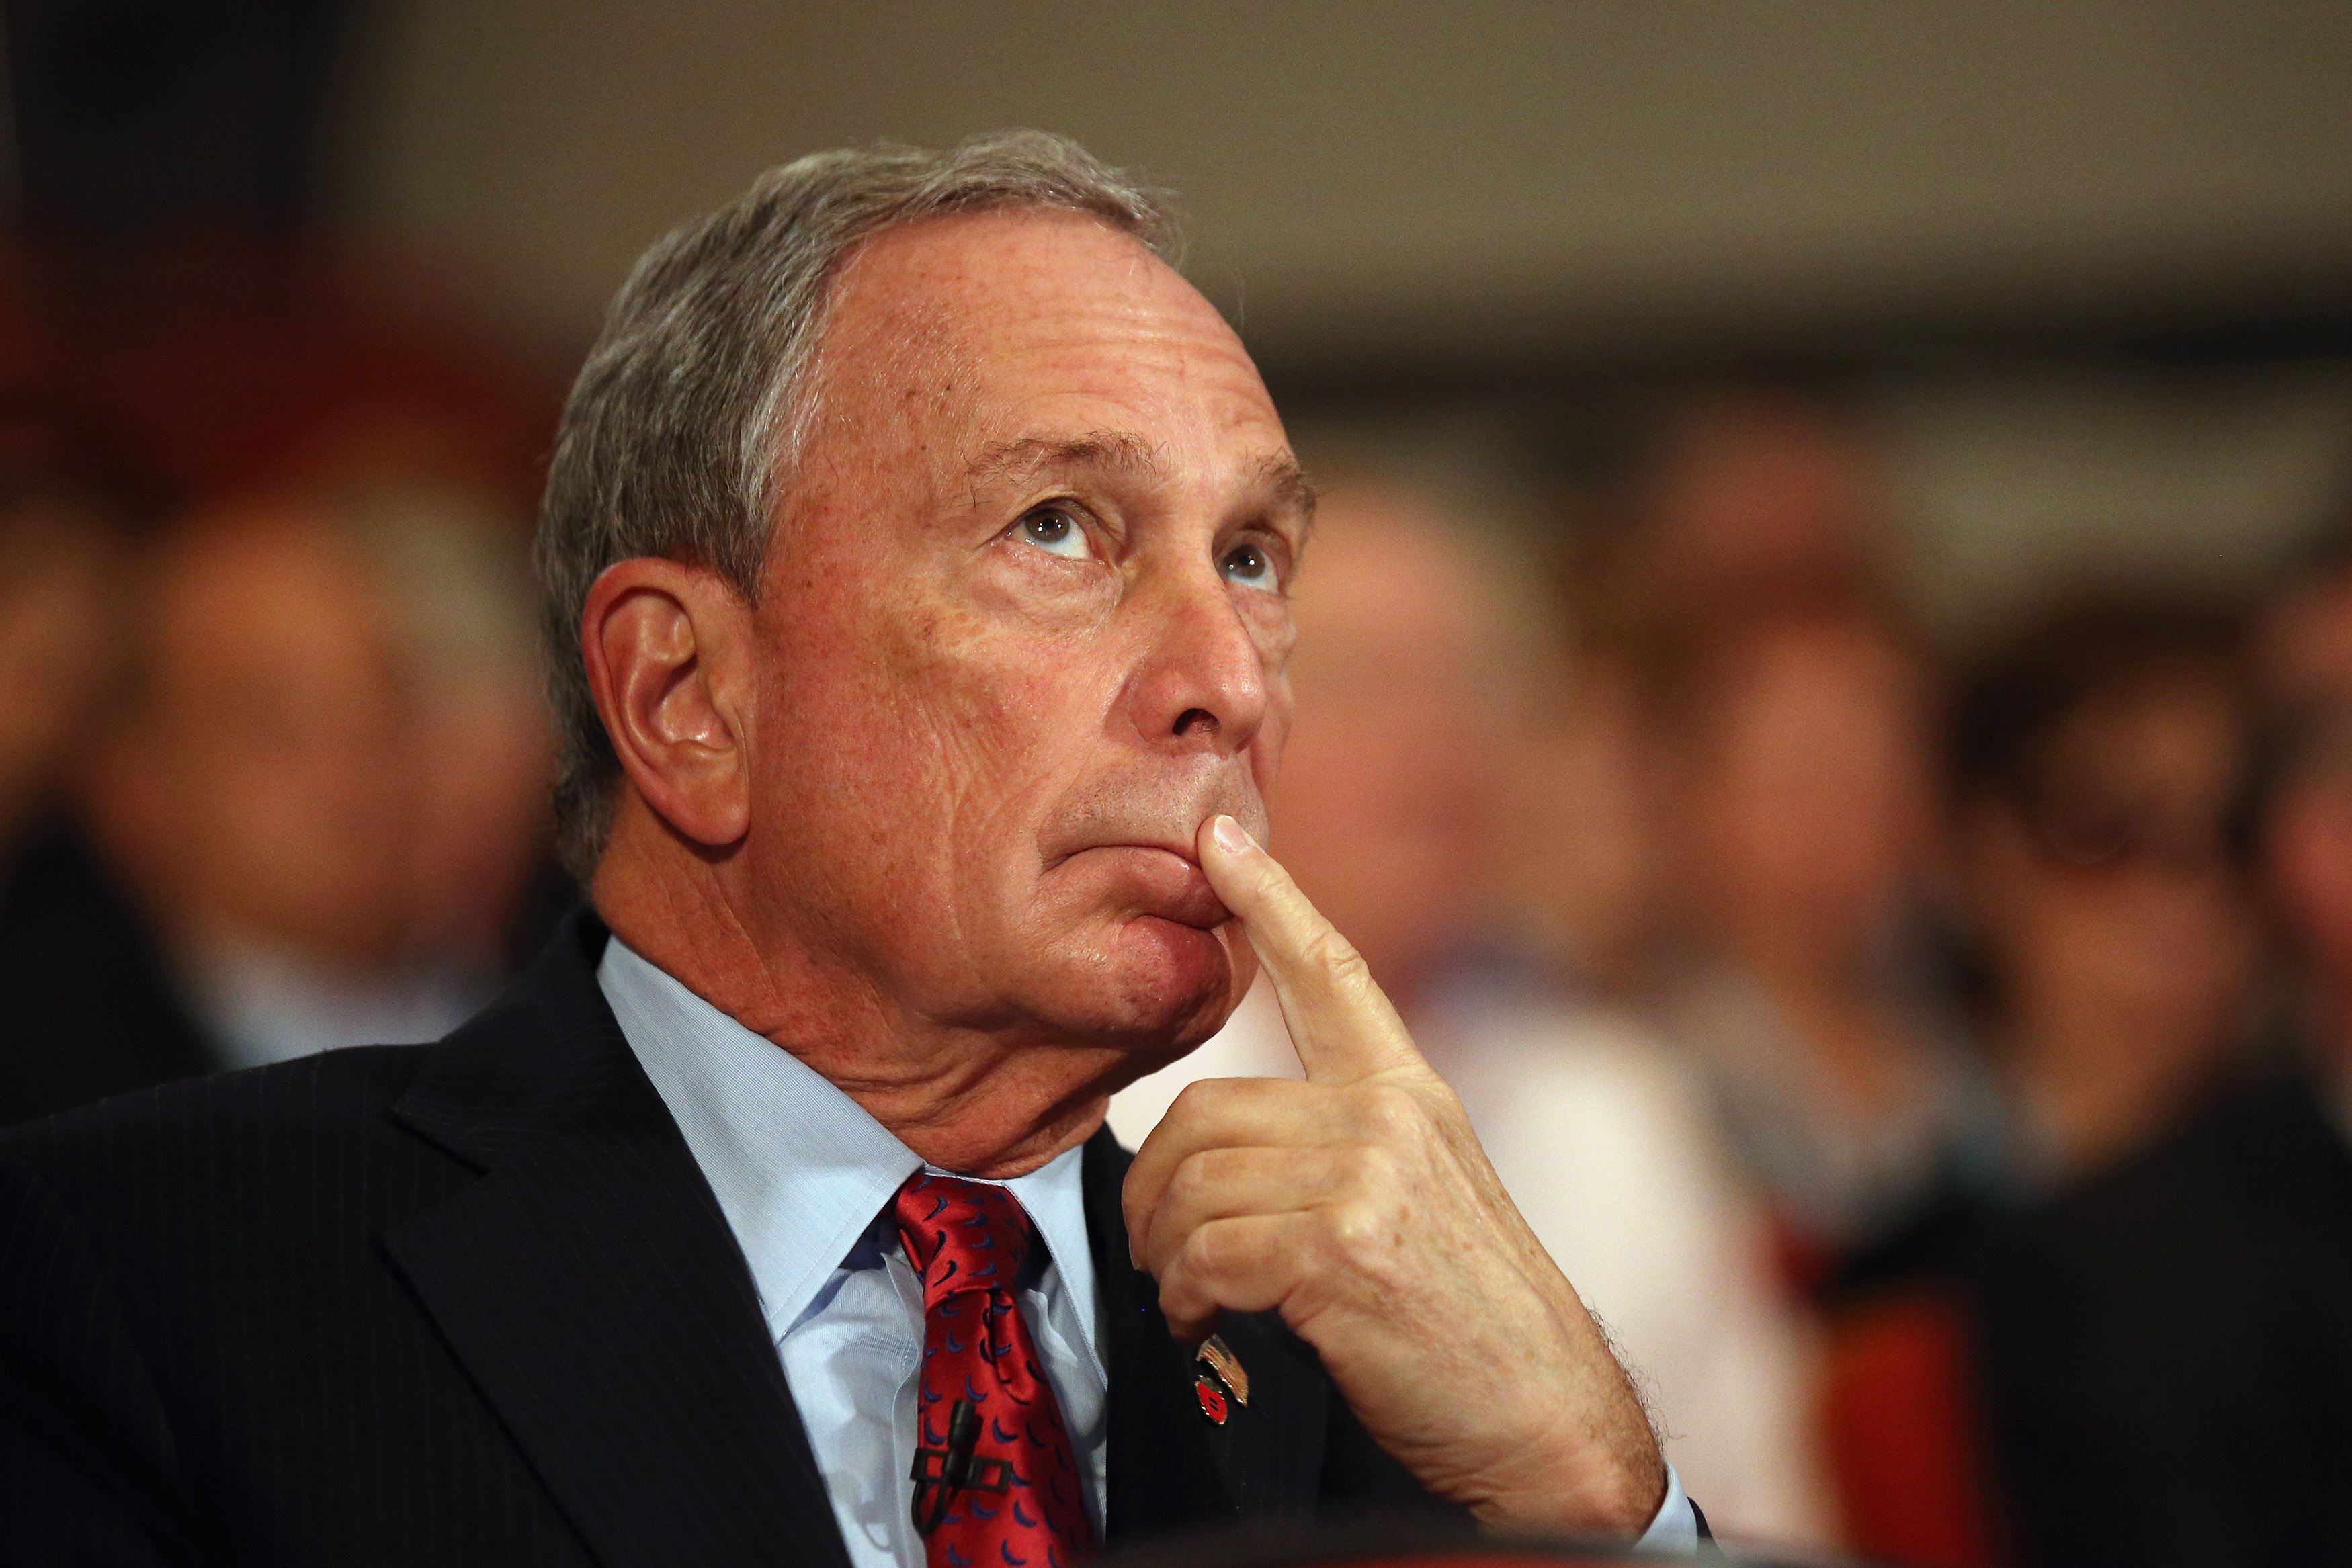 Michael Bloomberg, the Mayor of New York City ... (Photo by Oli Scarff/Getty Images)